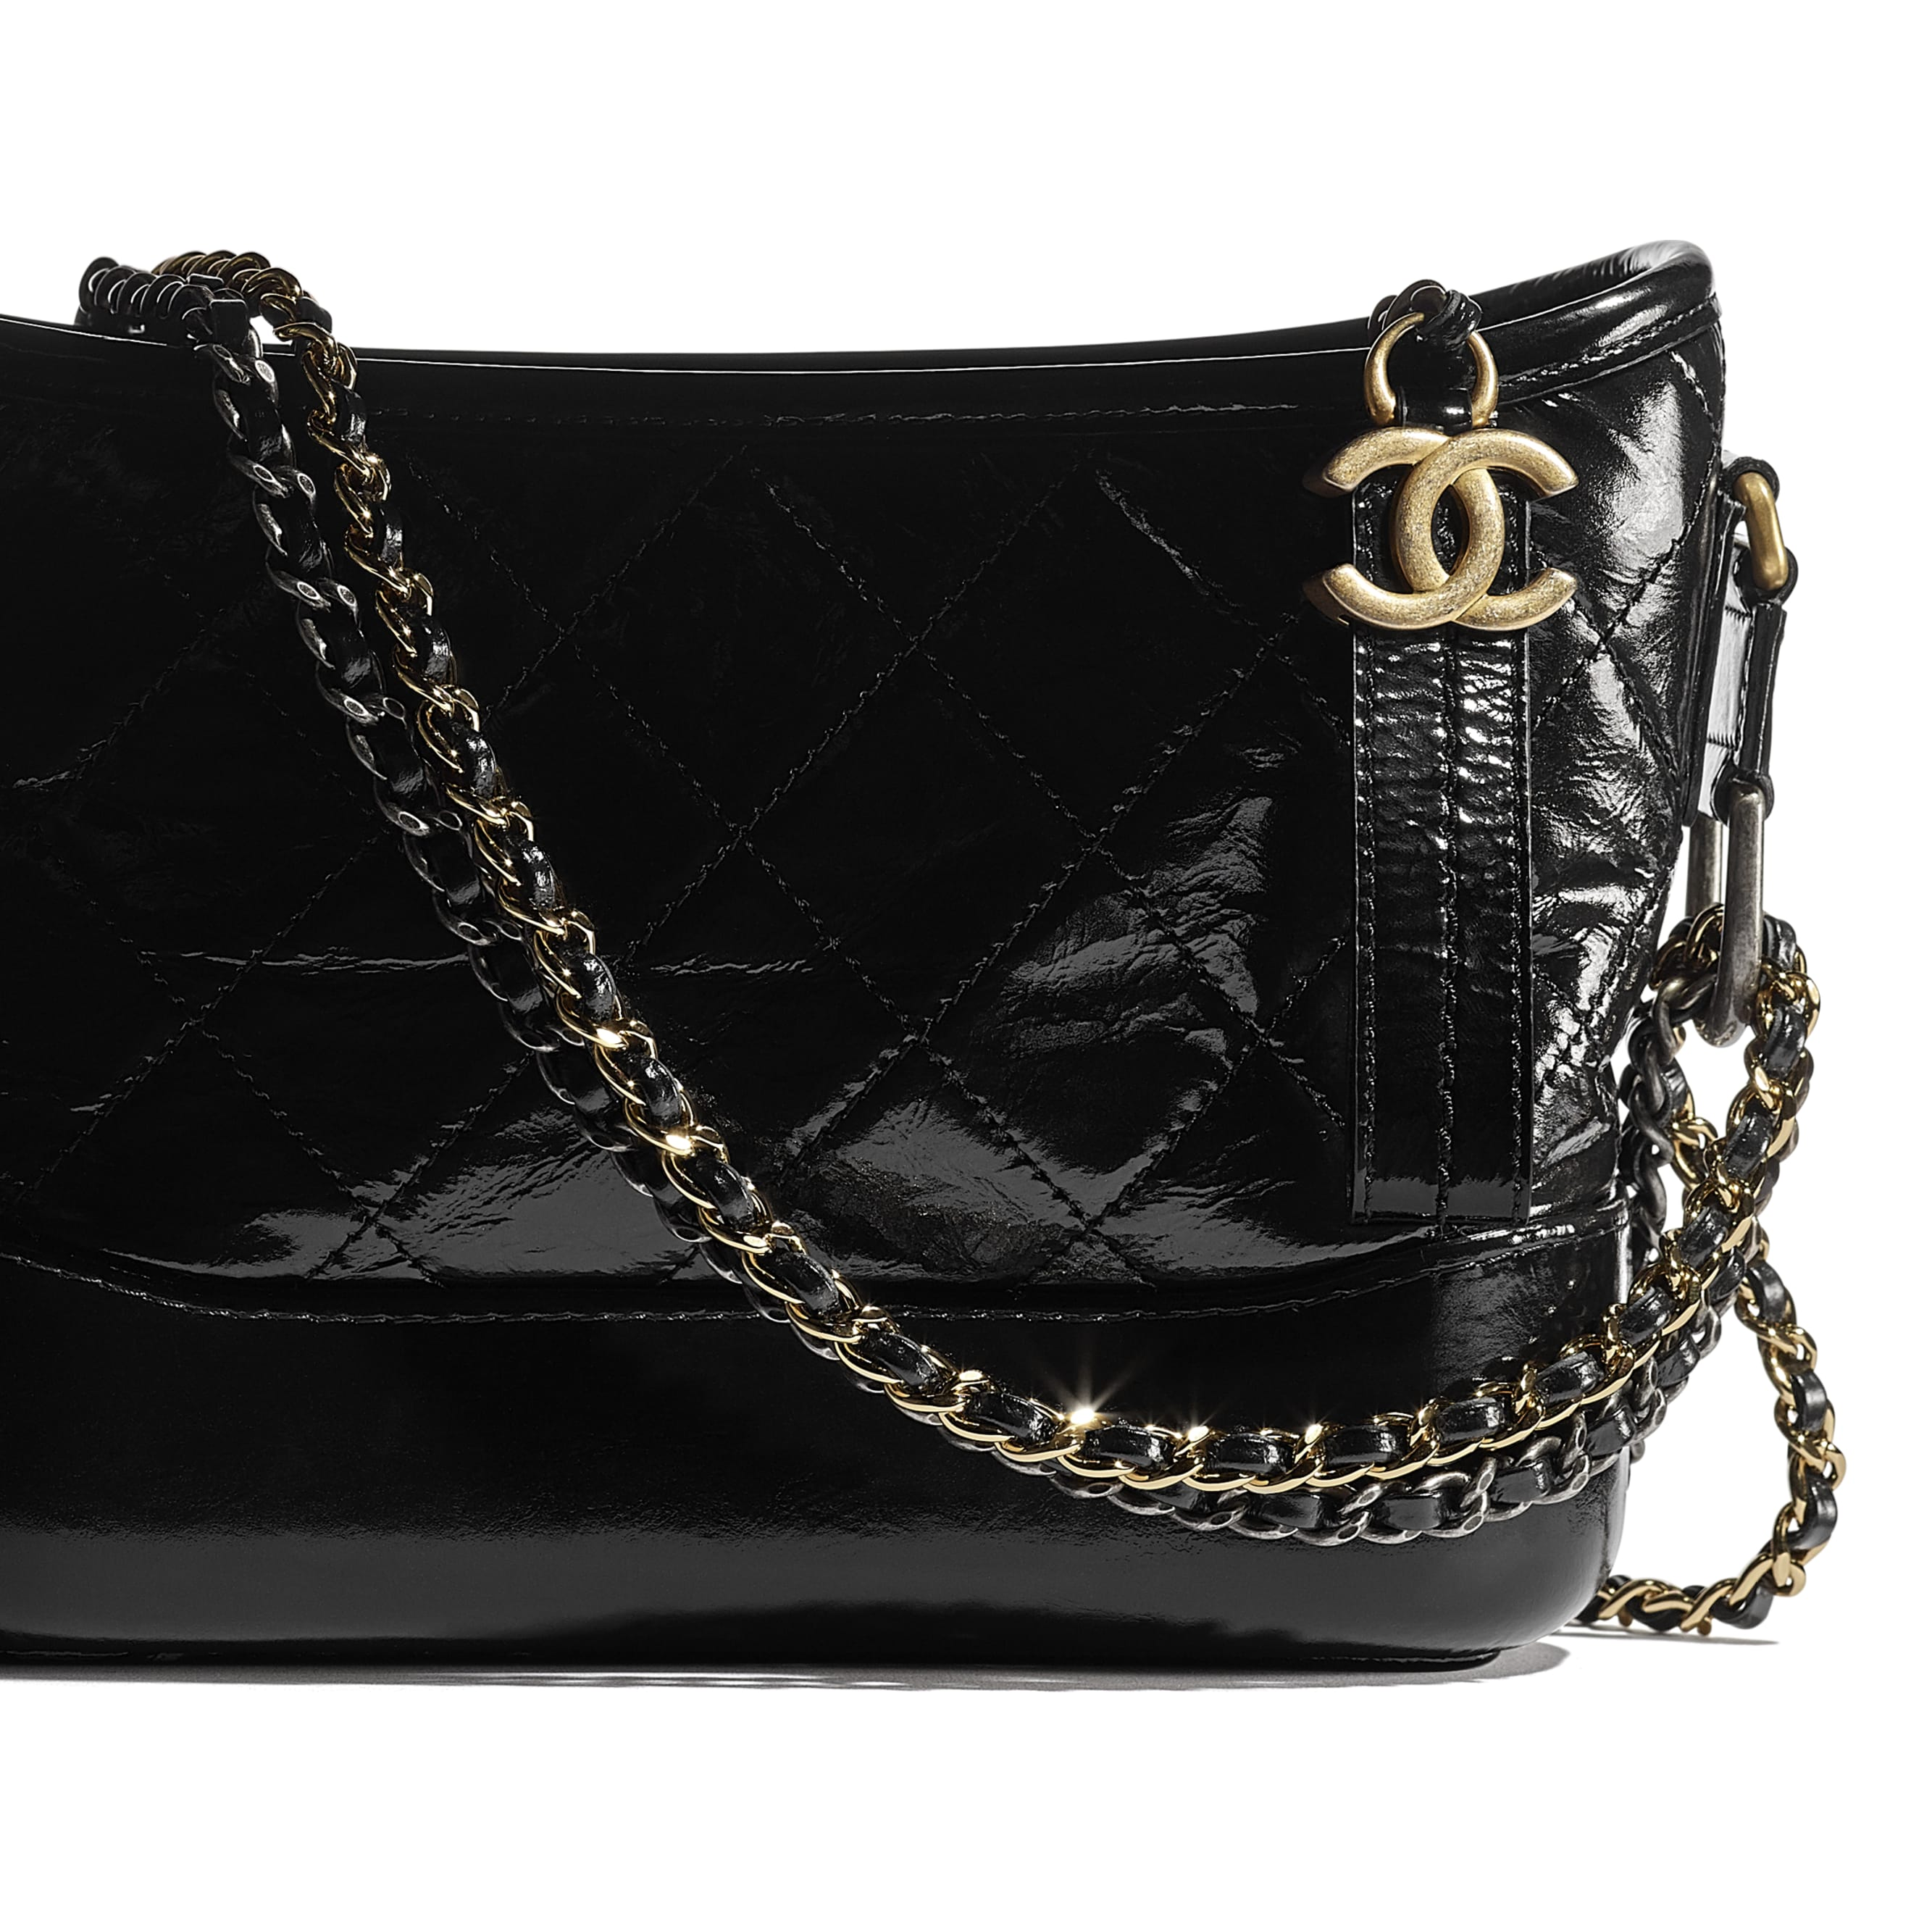 CHANEL'S GABRIELLE Small Hobo Bag - Black - Aged Calfskin, Smooth Calfskin, Gold-Tone, Silver-Tone & Ruthenium-Finish Metal - CHANEL - Extra view - see standard sized version